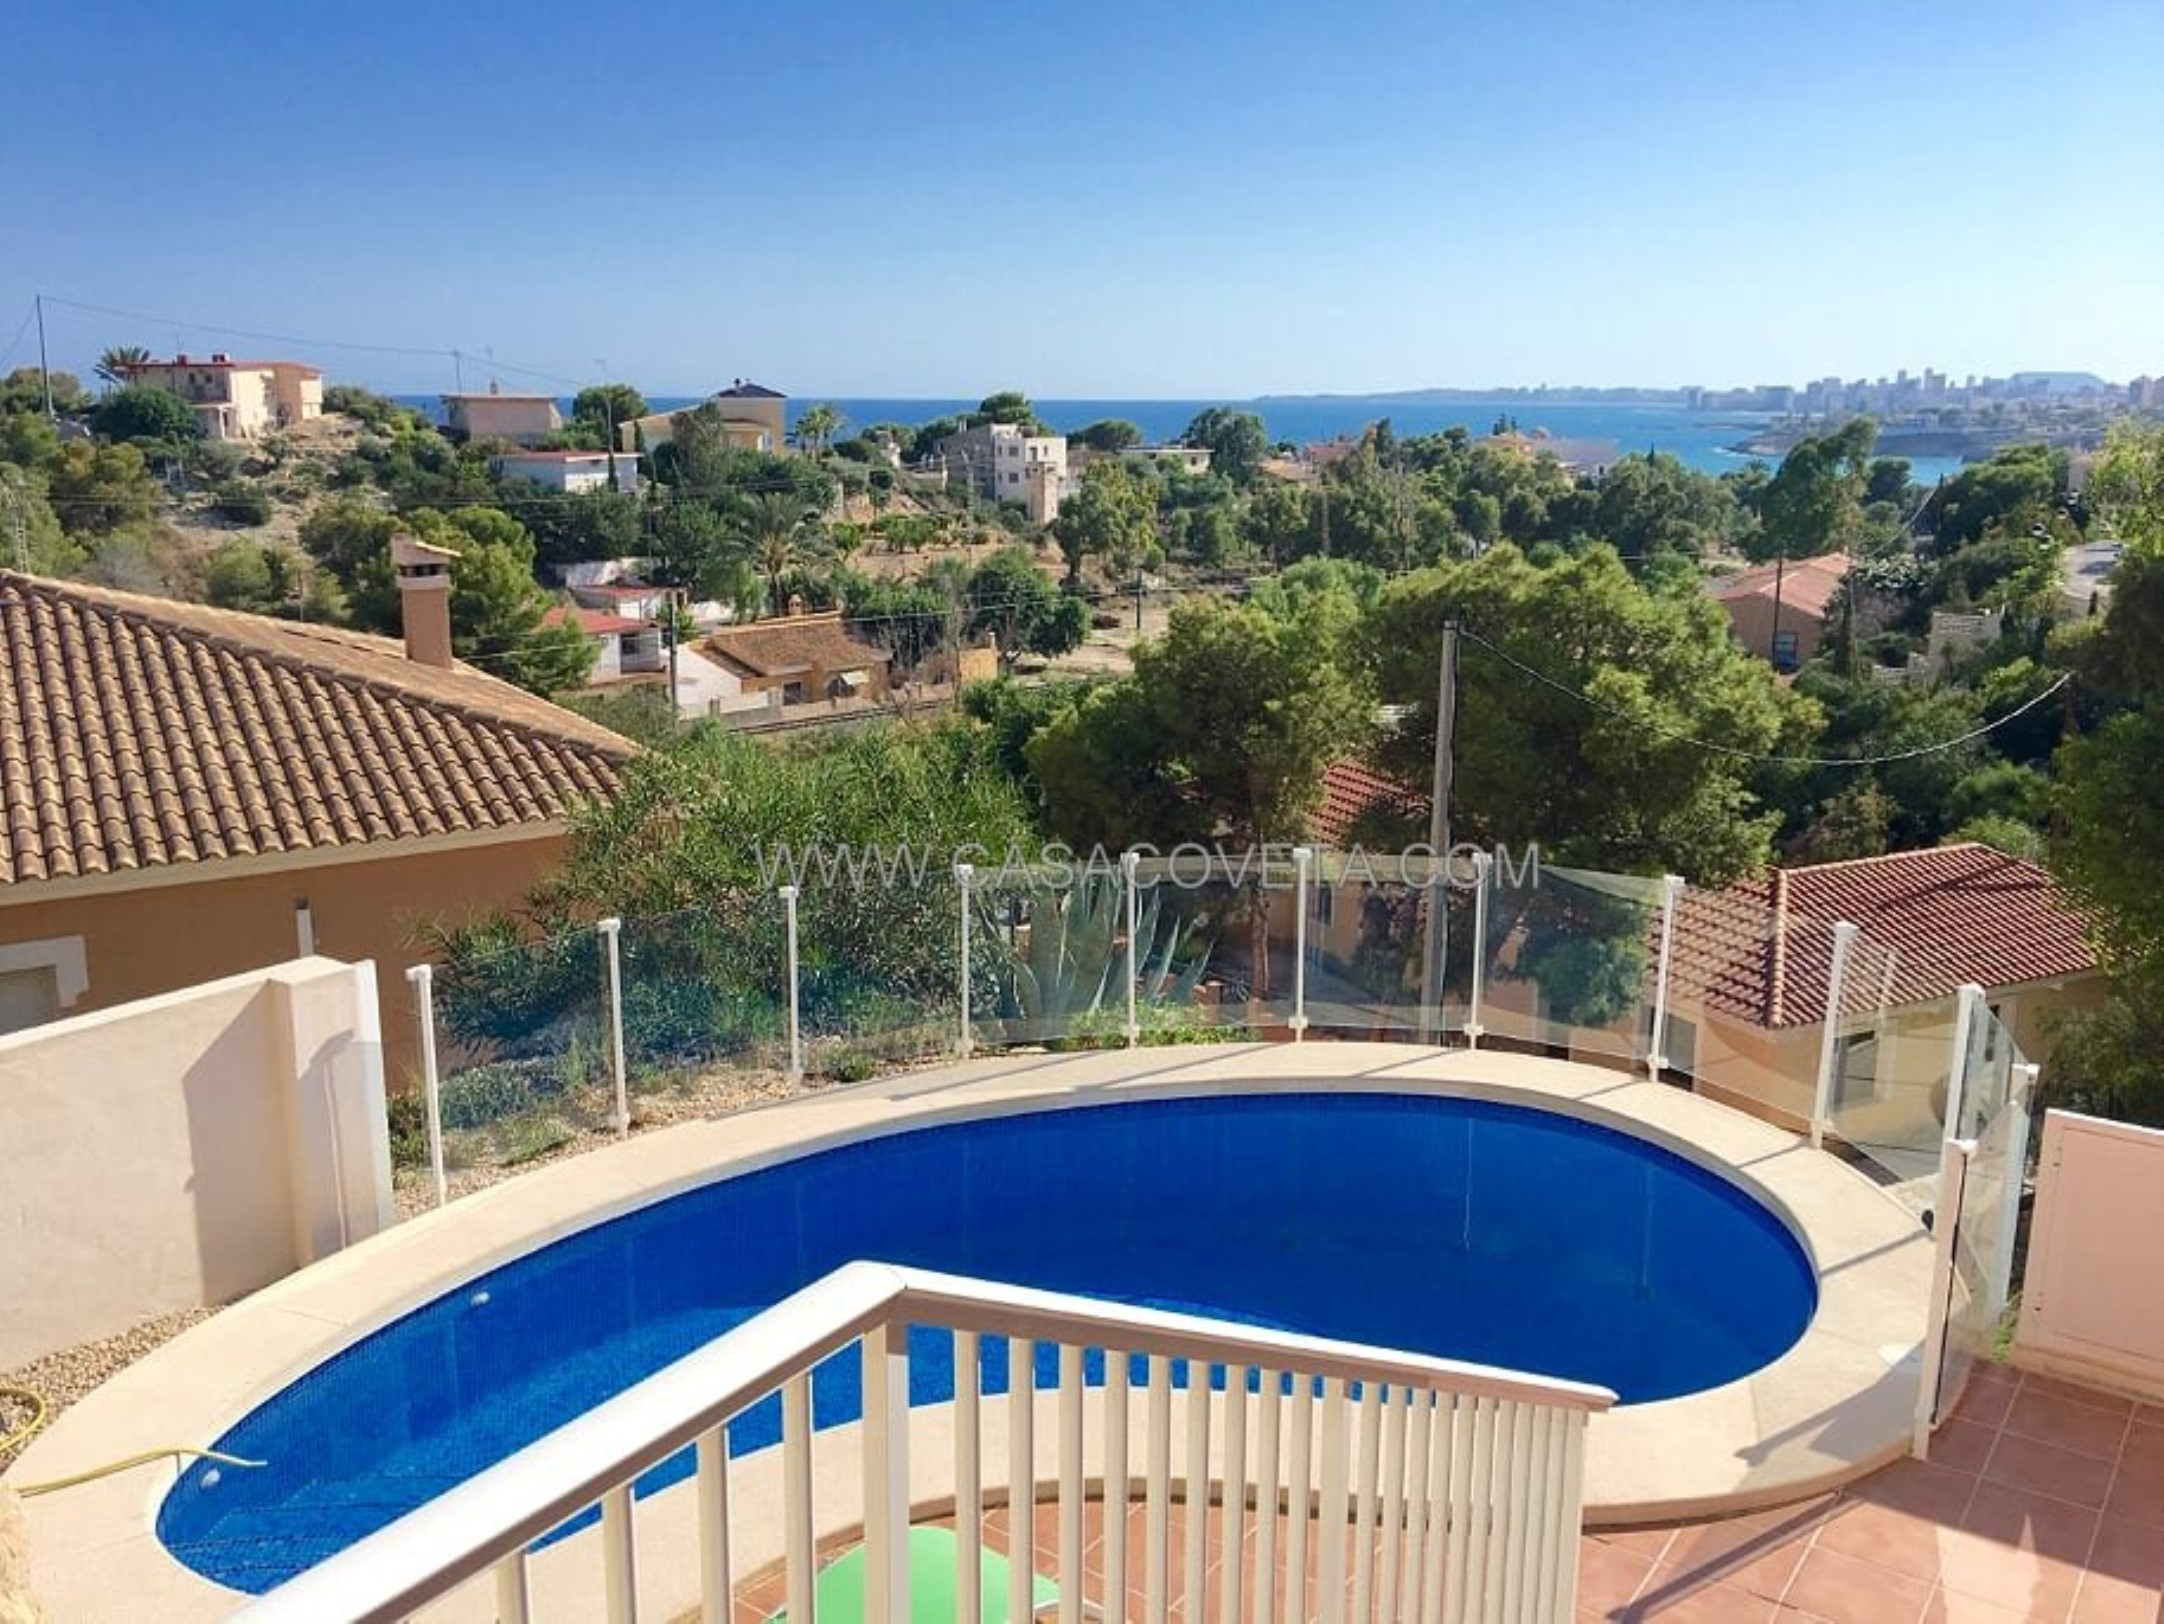 Enjoy a relaxing holiday with family and friends in Villa La Cabana. HEATED POOL Ref 569